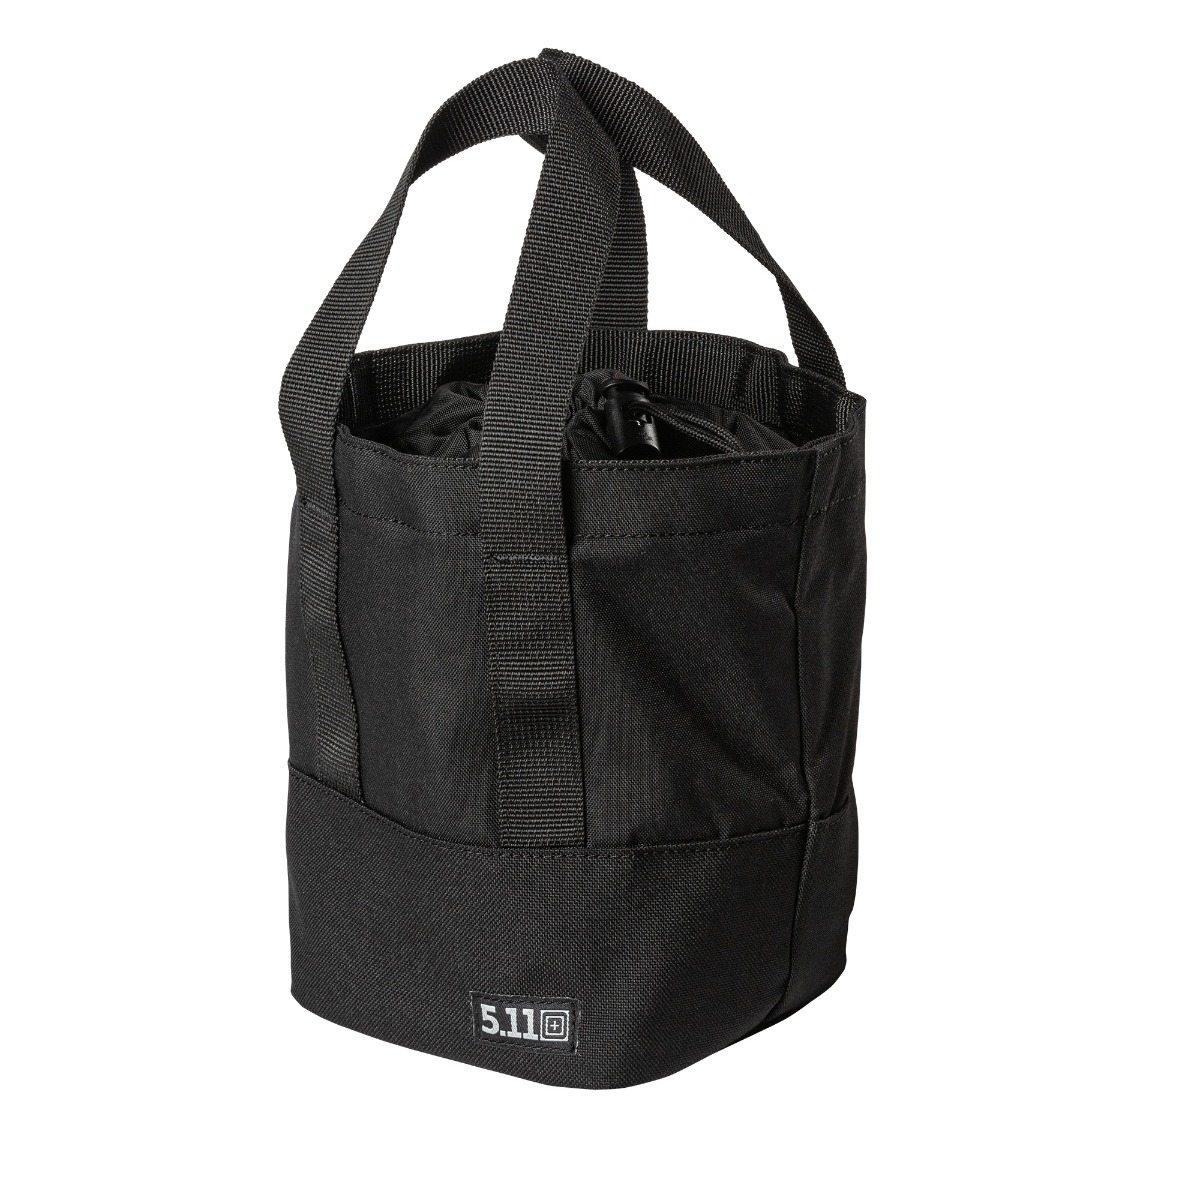 5.11 Tactical Range Master Bucket Bag 4L thumbnail